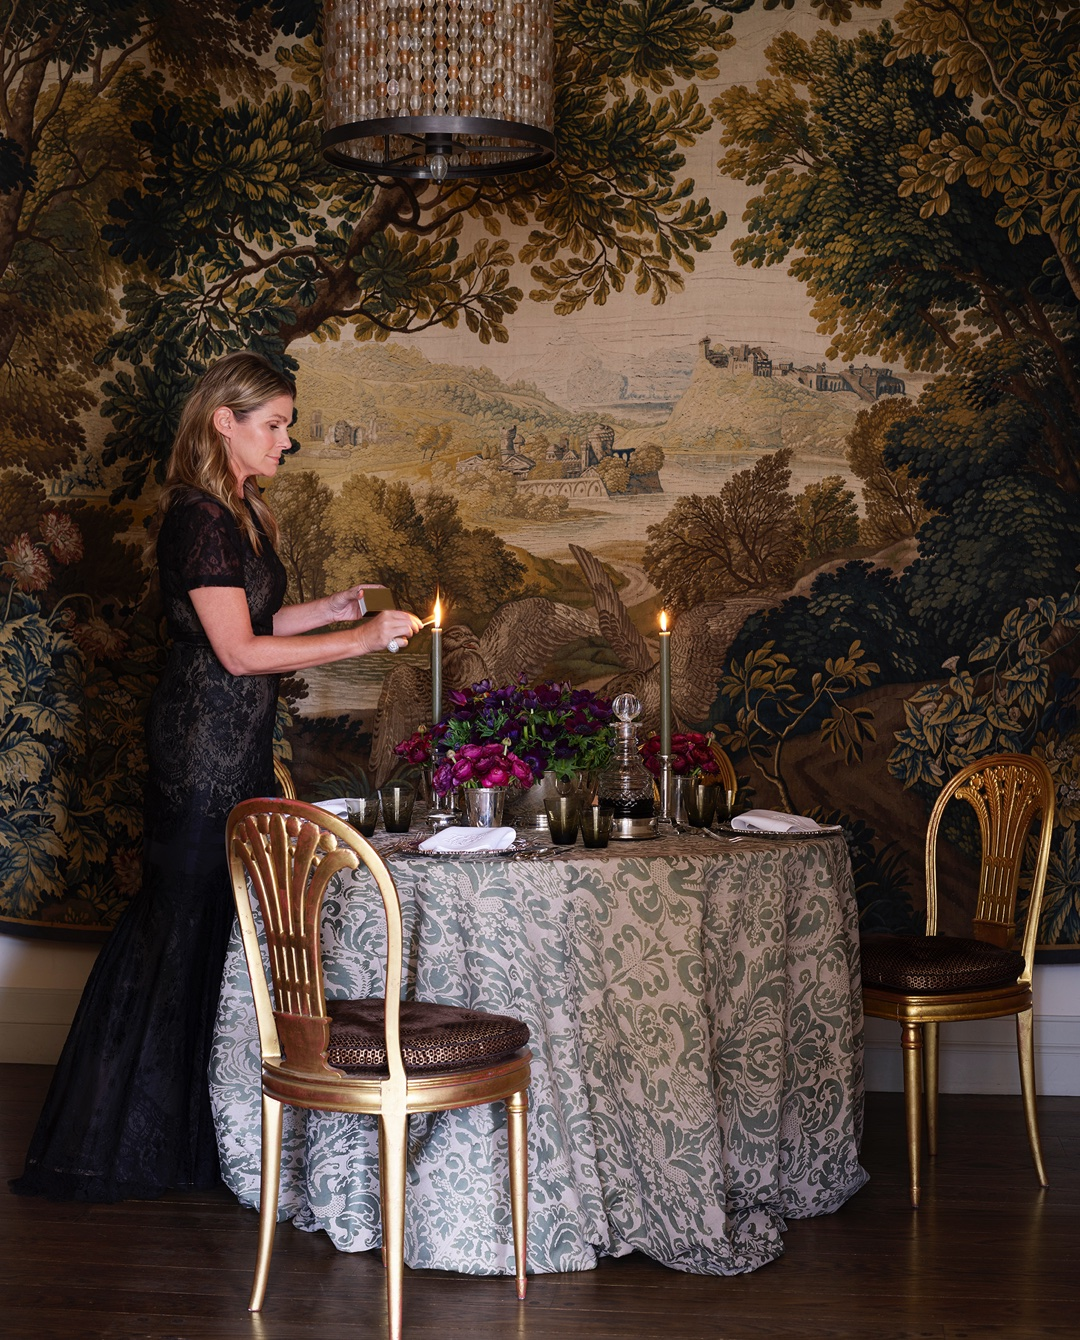 Aerin setting the table